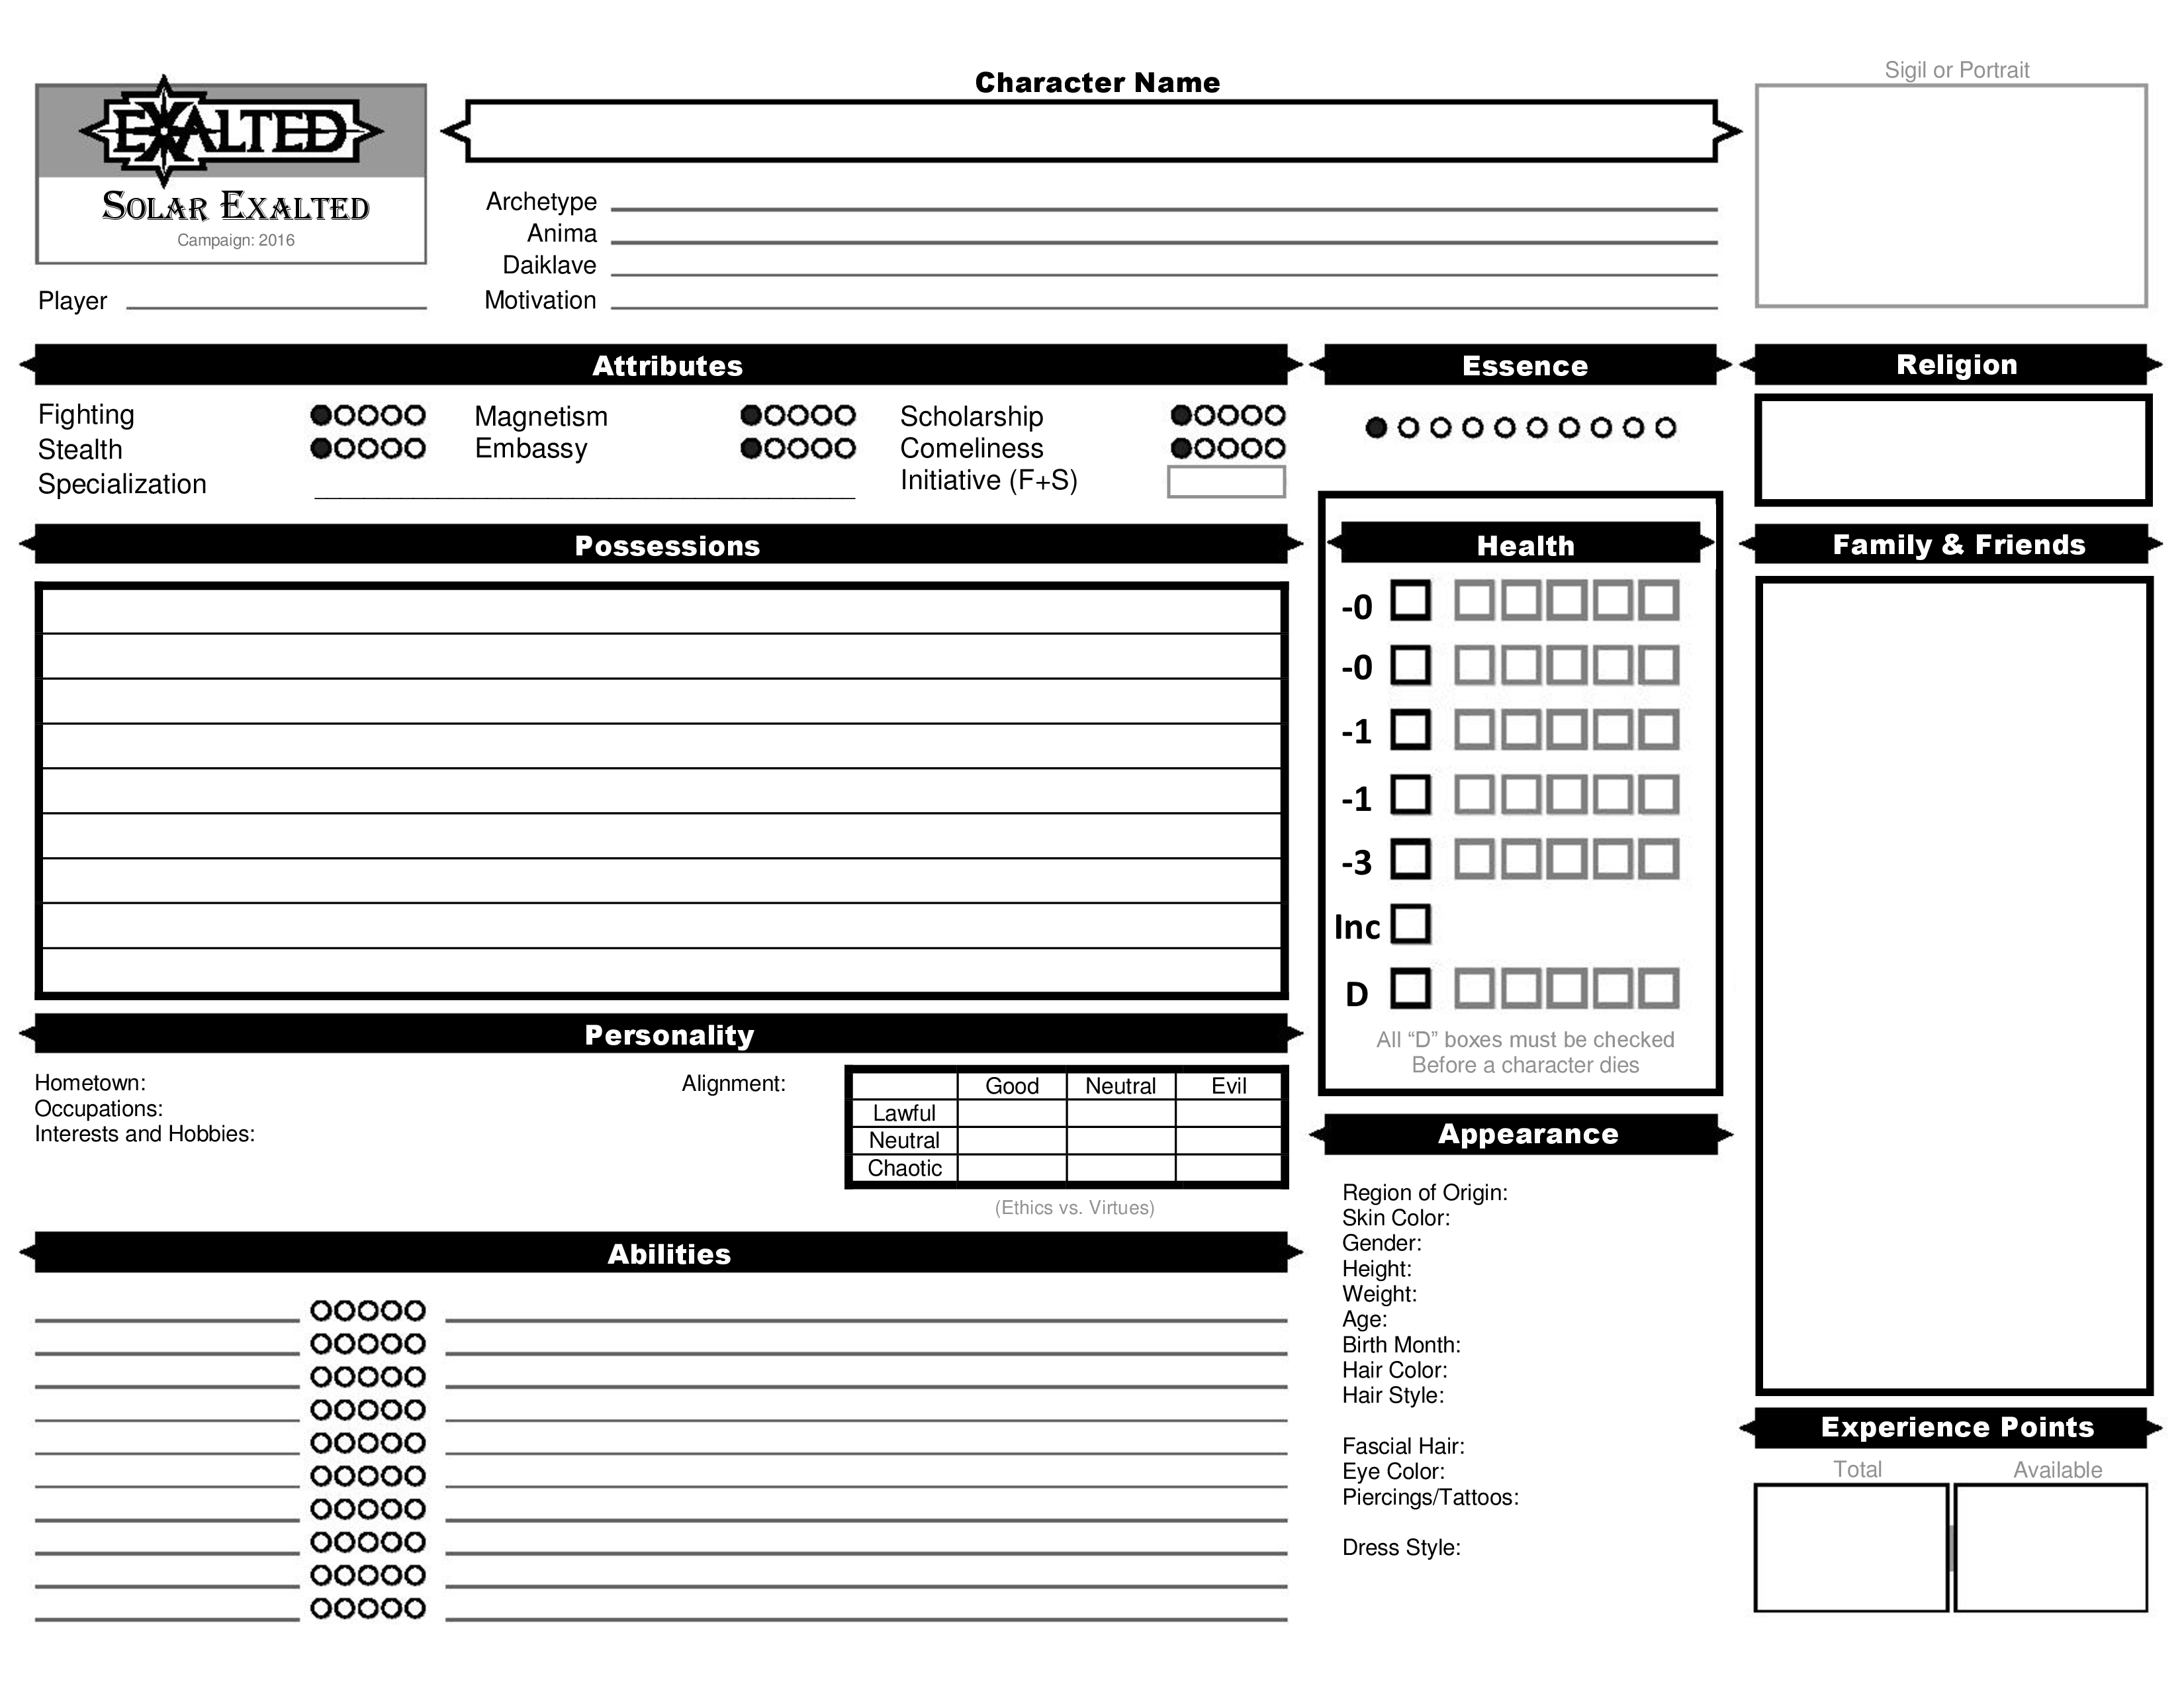 Exalted_Solar_Character_Sheet_2016.png